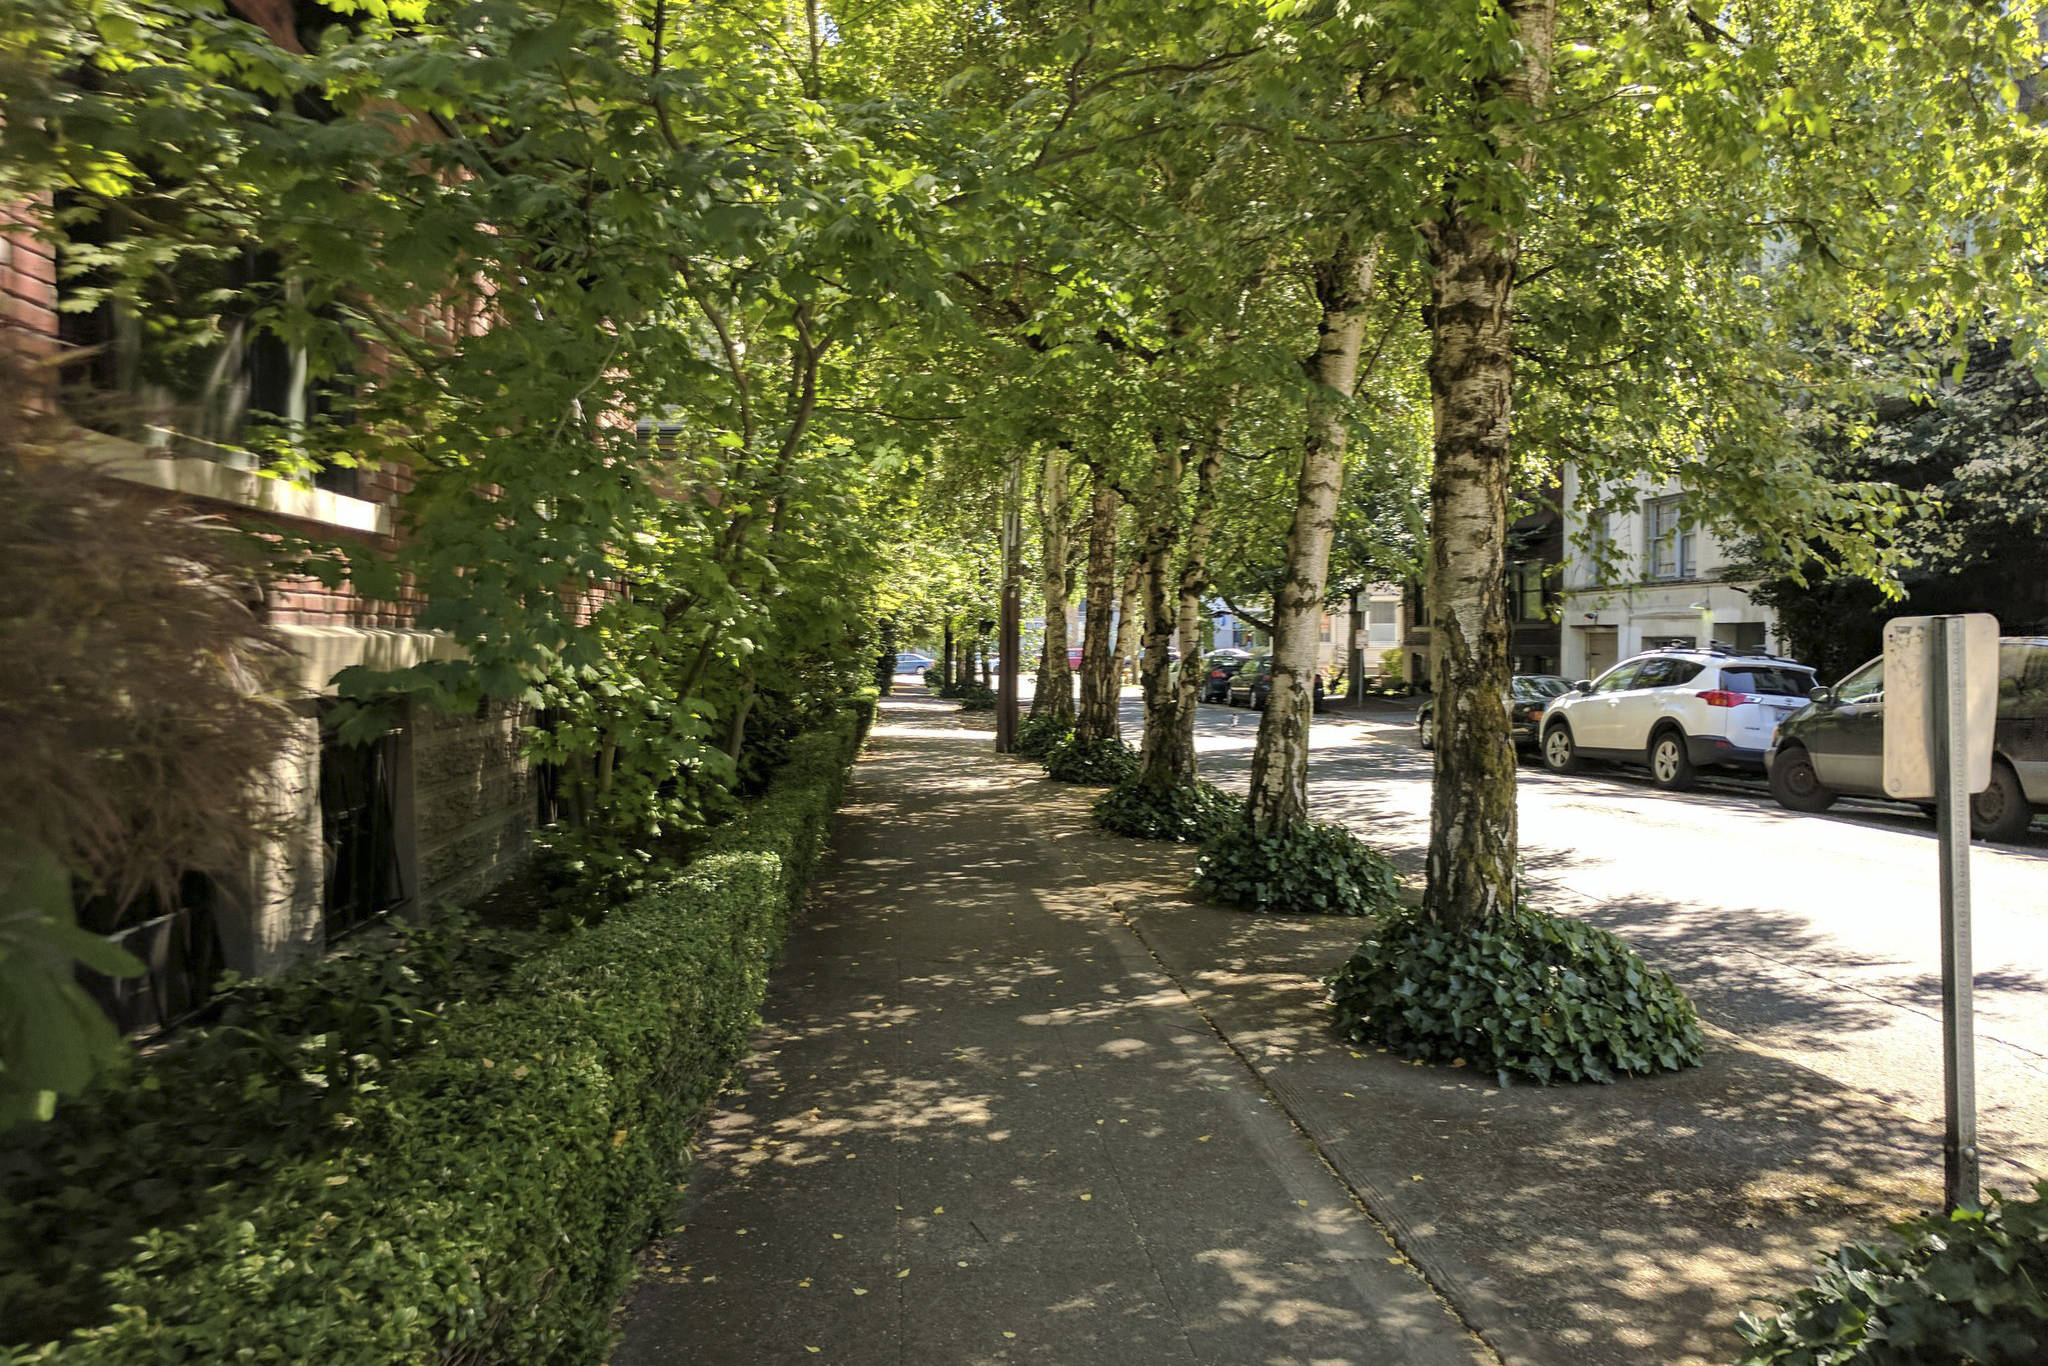 Tree canopy provides shade to pedestrians and cleans the air